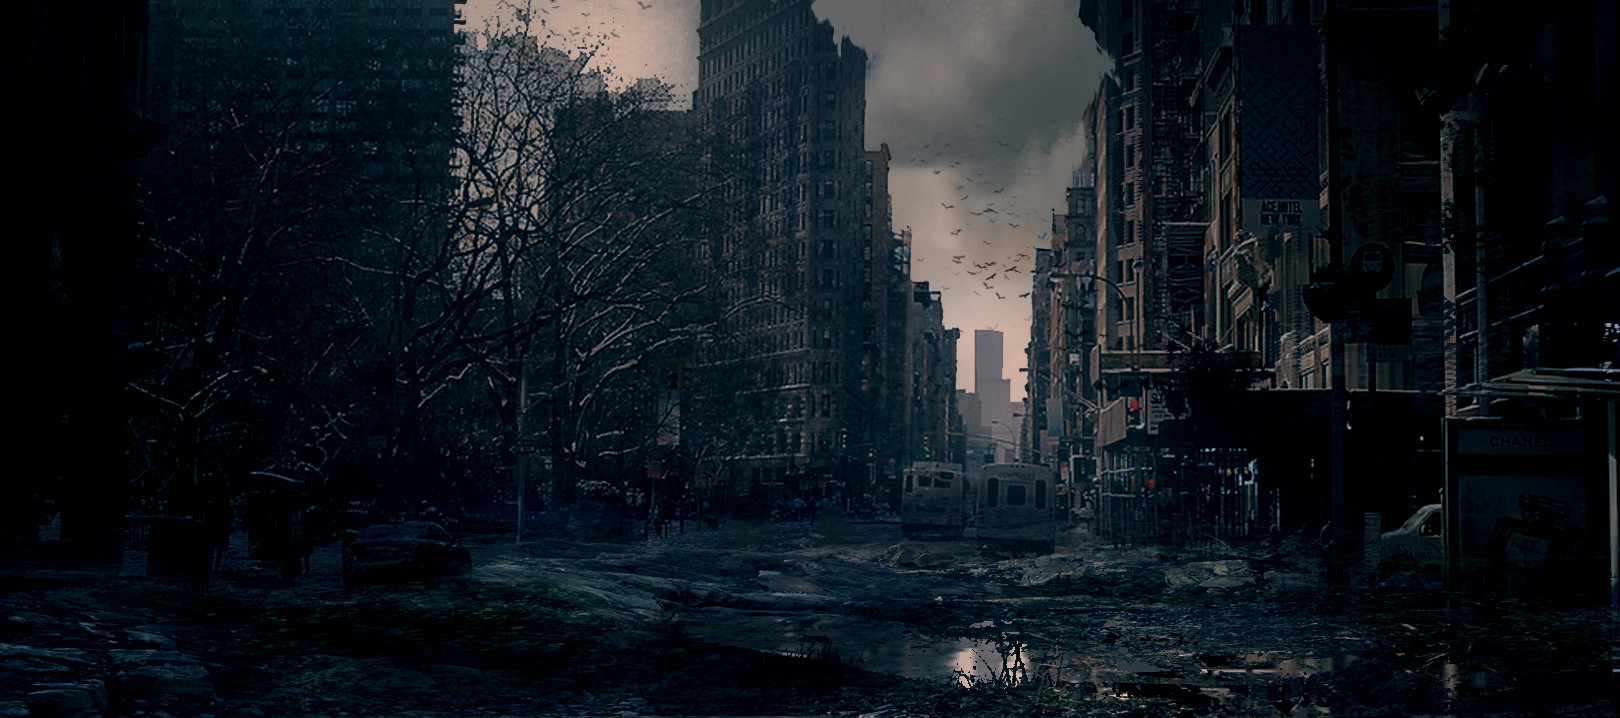 Post Apocalyptic City By Matthew Watts Imaginarywastelands